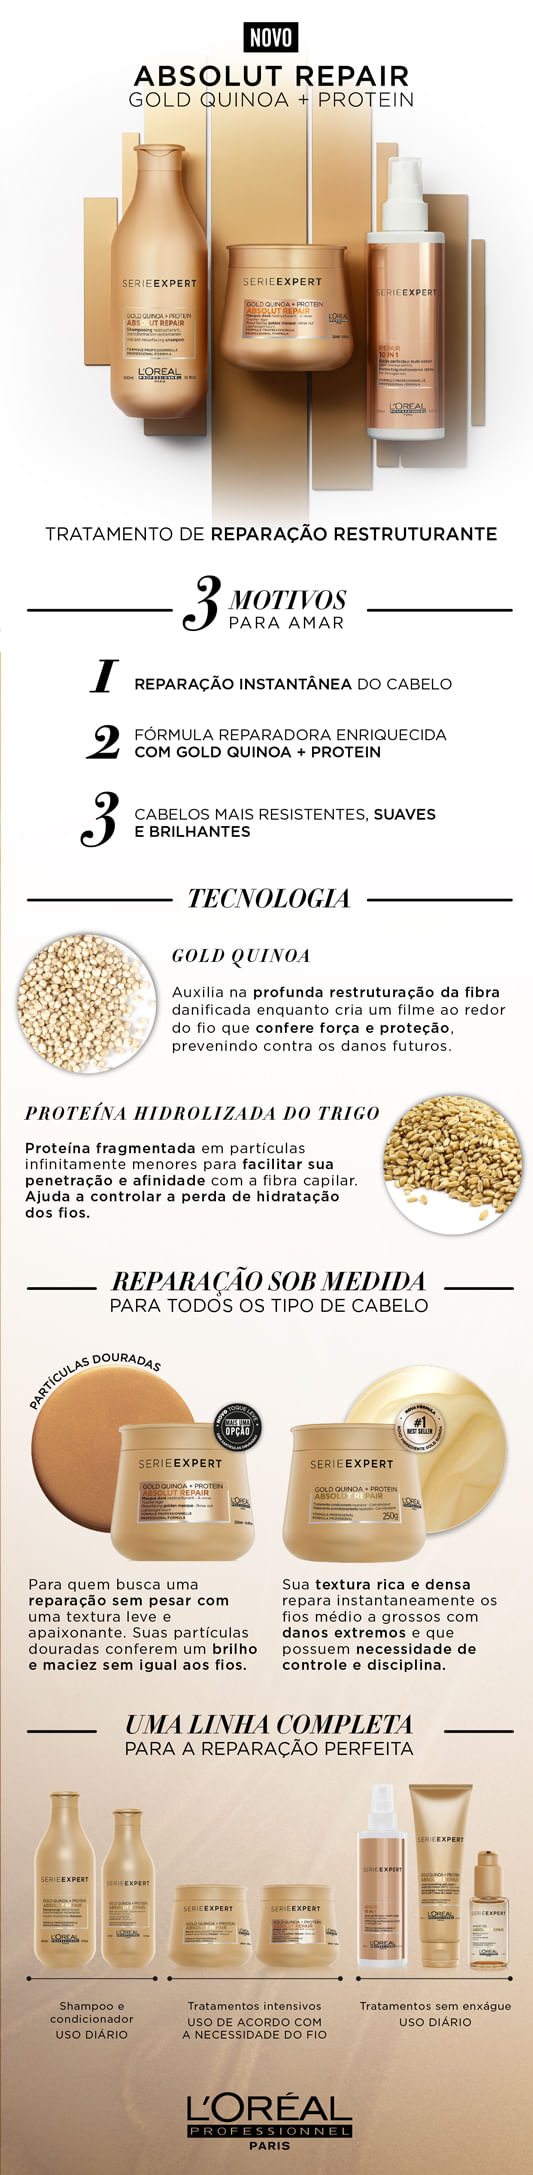 L'Oréal Professionnel Absolut Repair Gold Quinoa + Protein